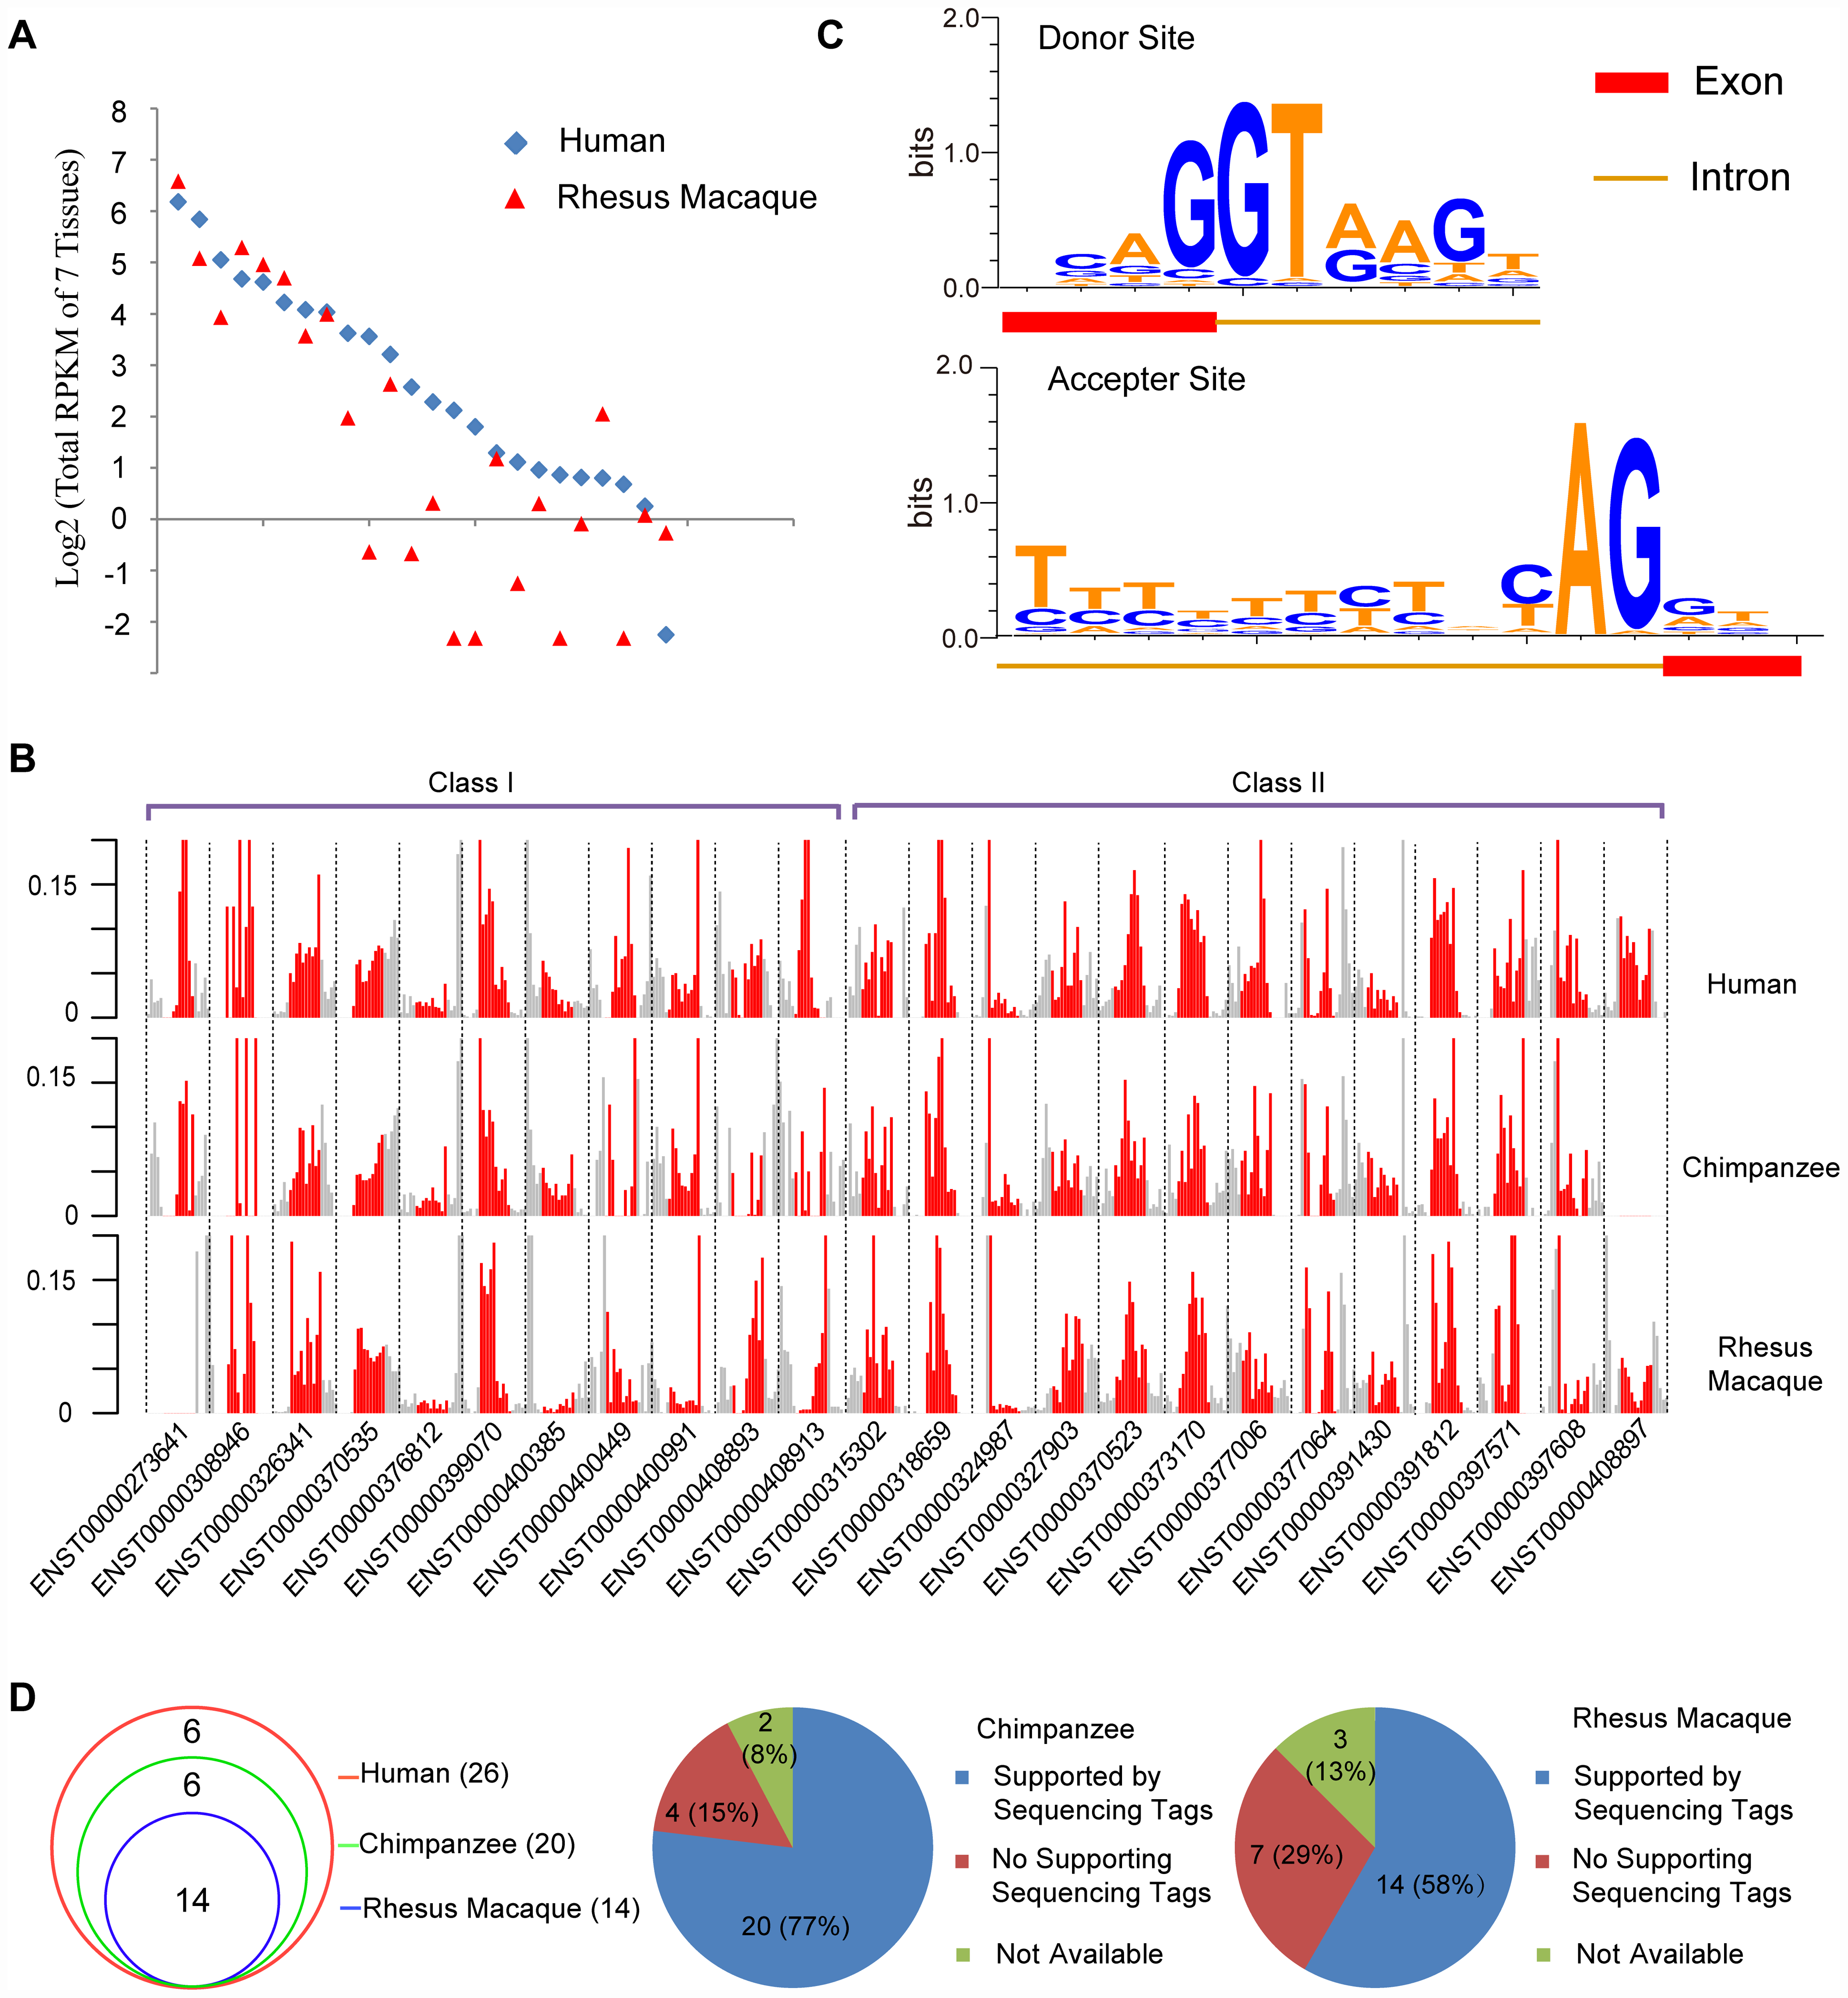 Orthologs of human <i>de novo</i> protein-coding genes encode structure-matched non-coding RNAs in rhesus macaque or chimpanzee.